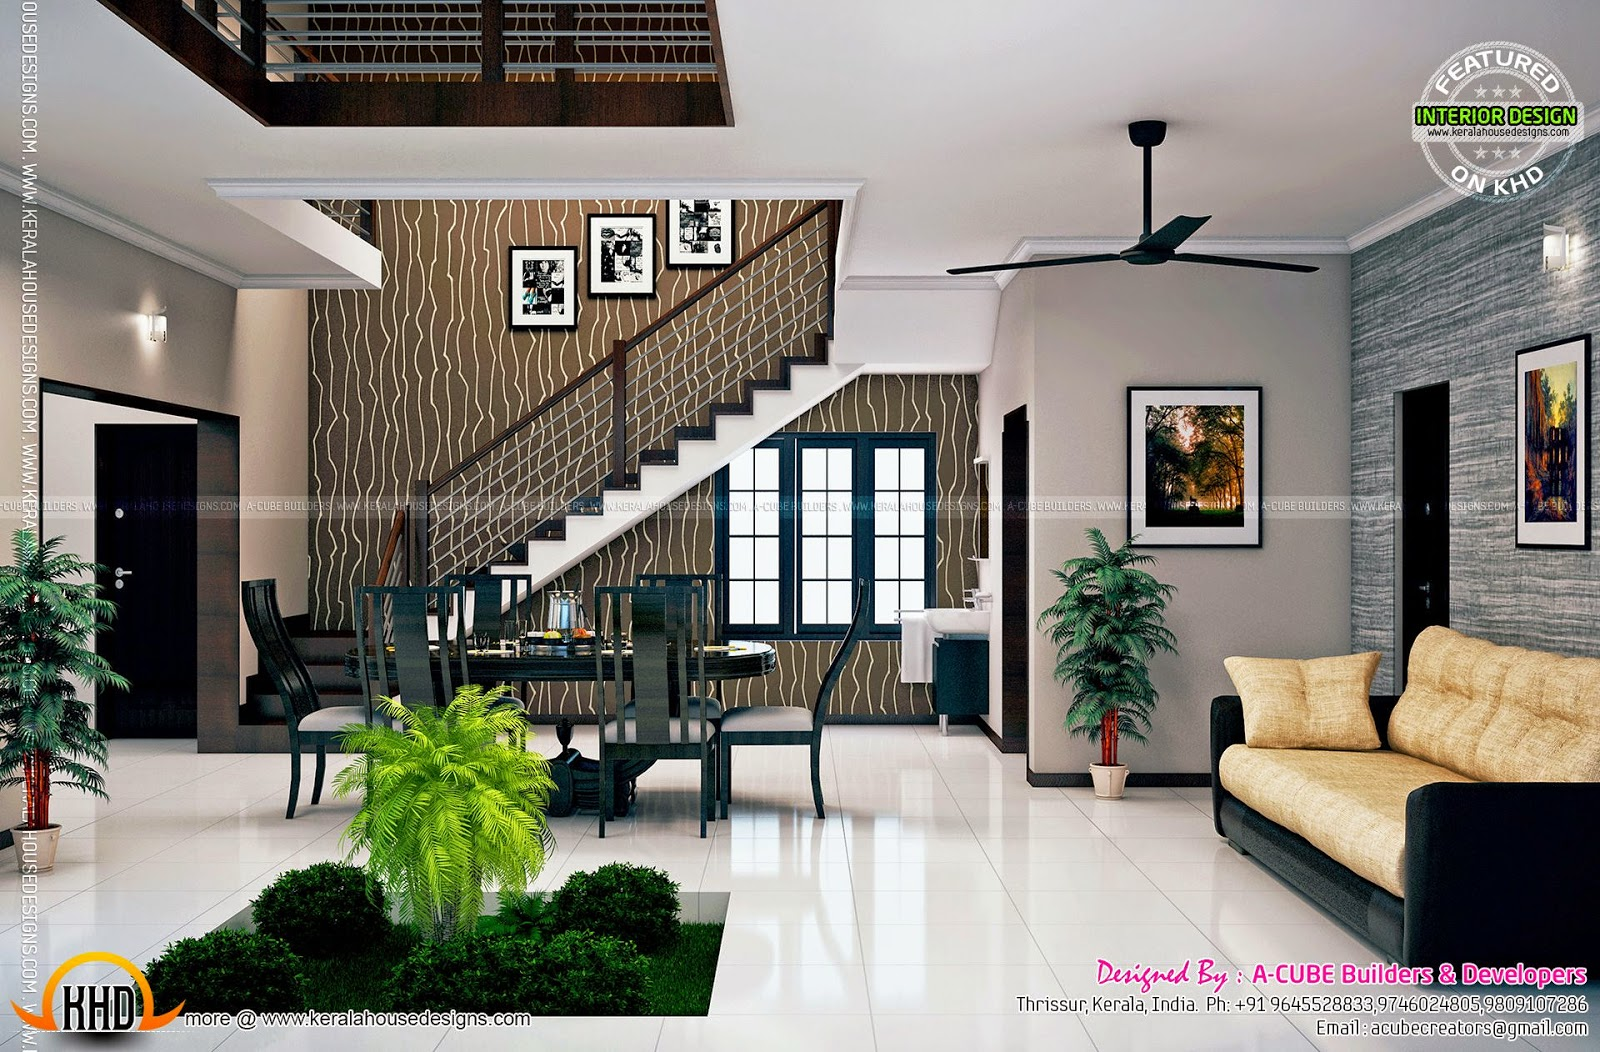 Kerala interior design ideas kerala home design and for Living room interior in kerala